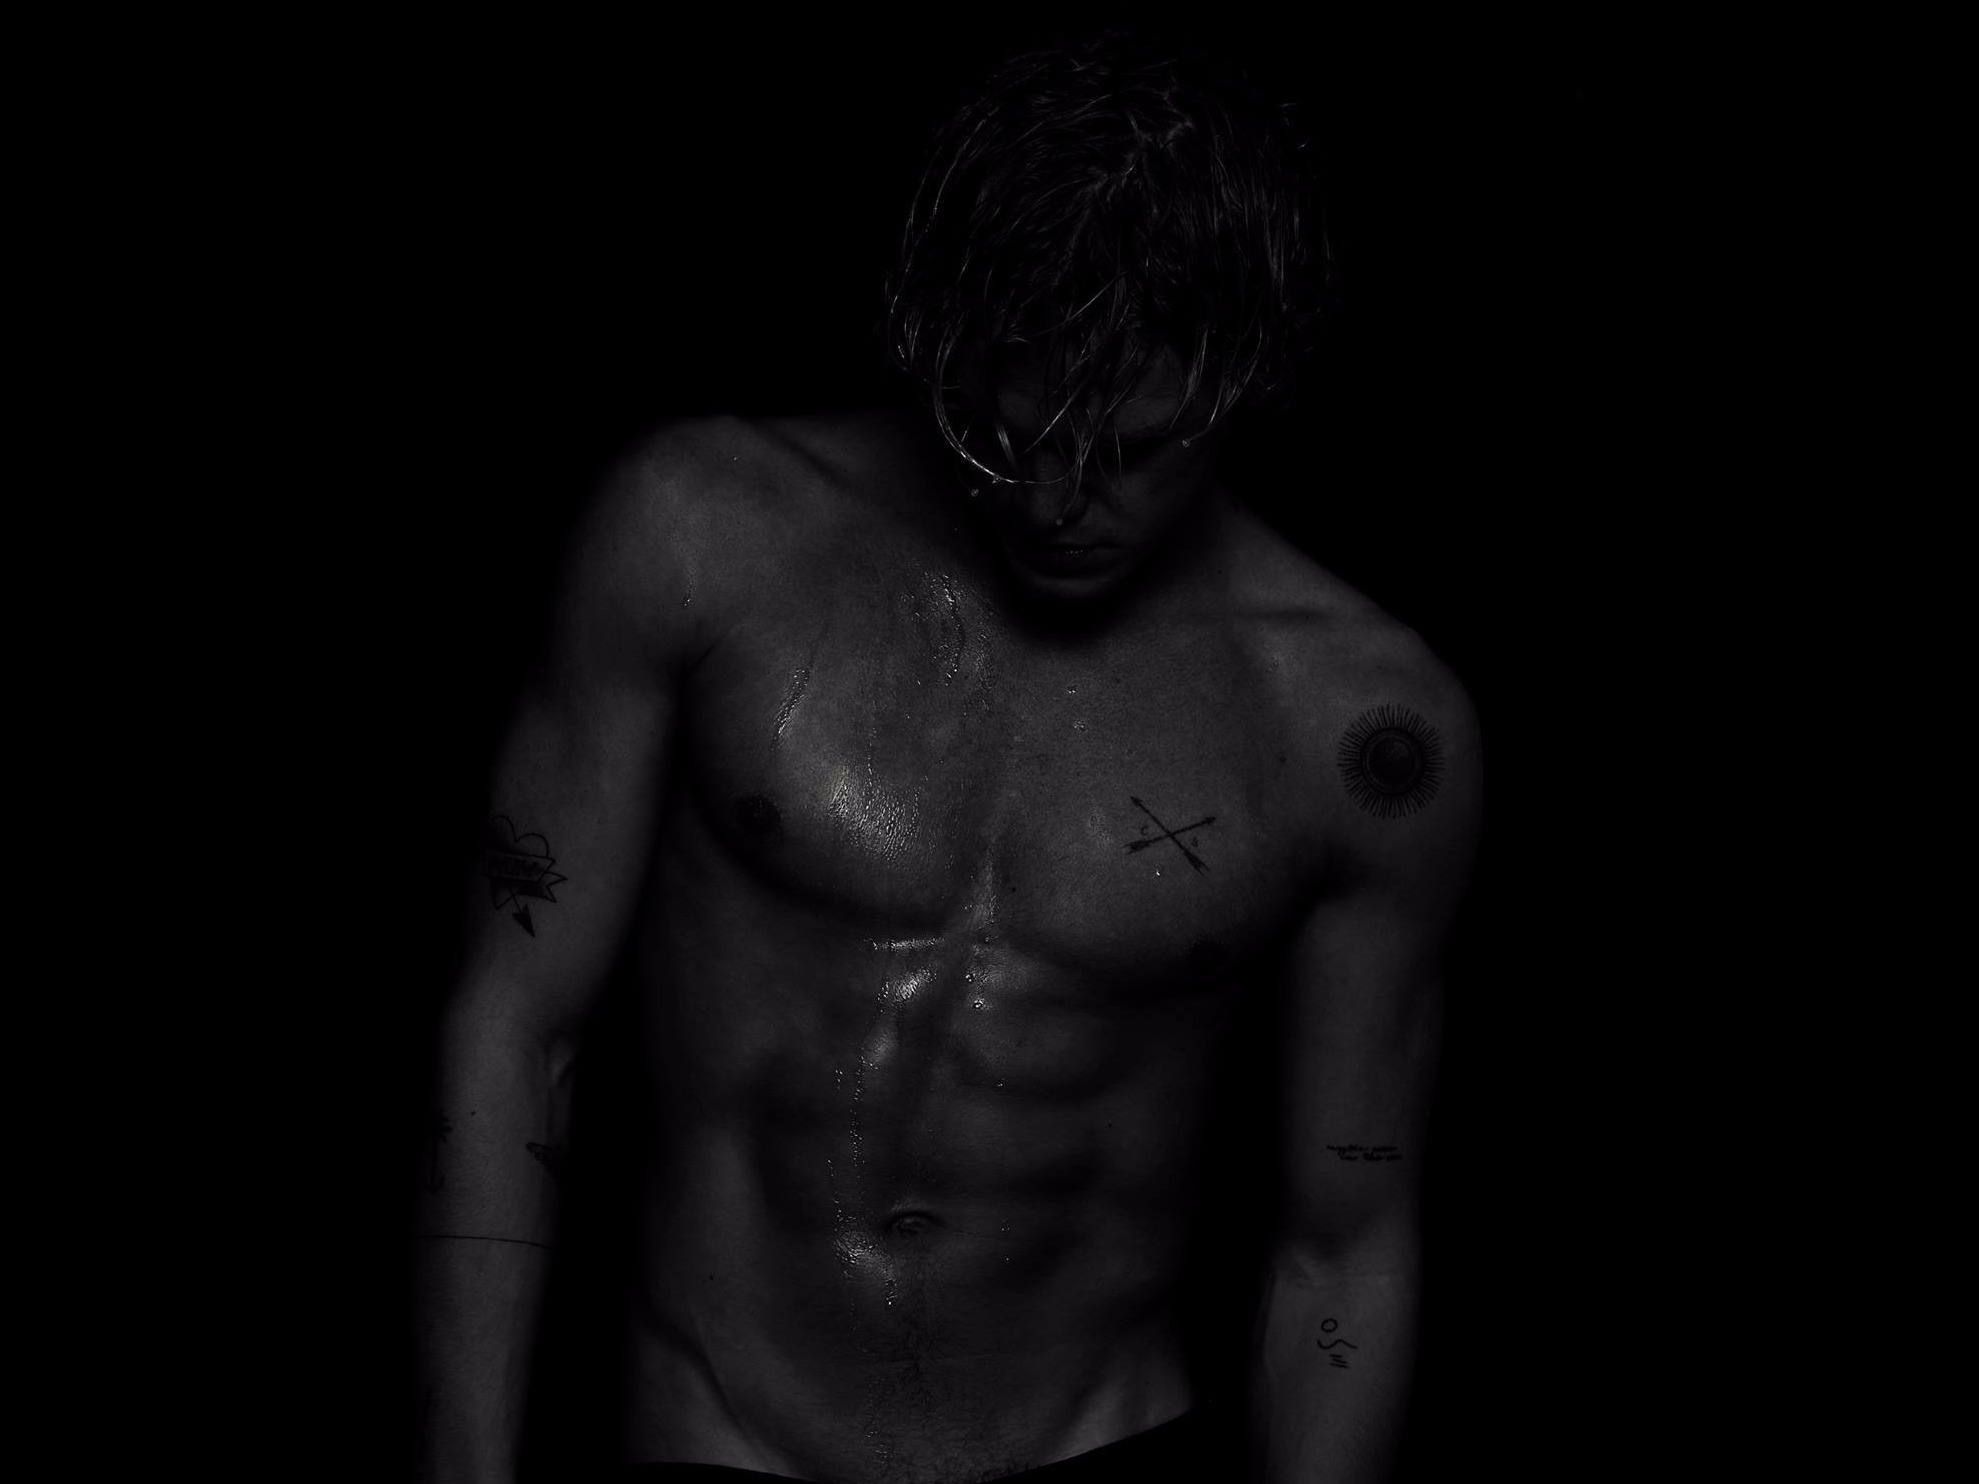 SONG OF THE DAY: 'Waiting For The Tide' by Cody Simpson and The Tide